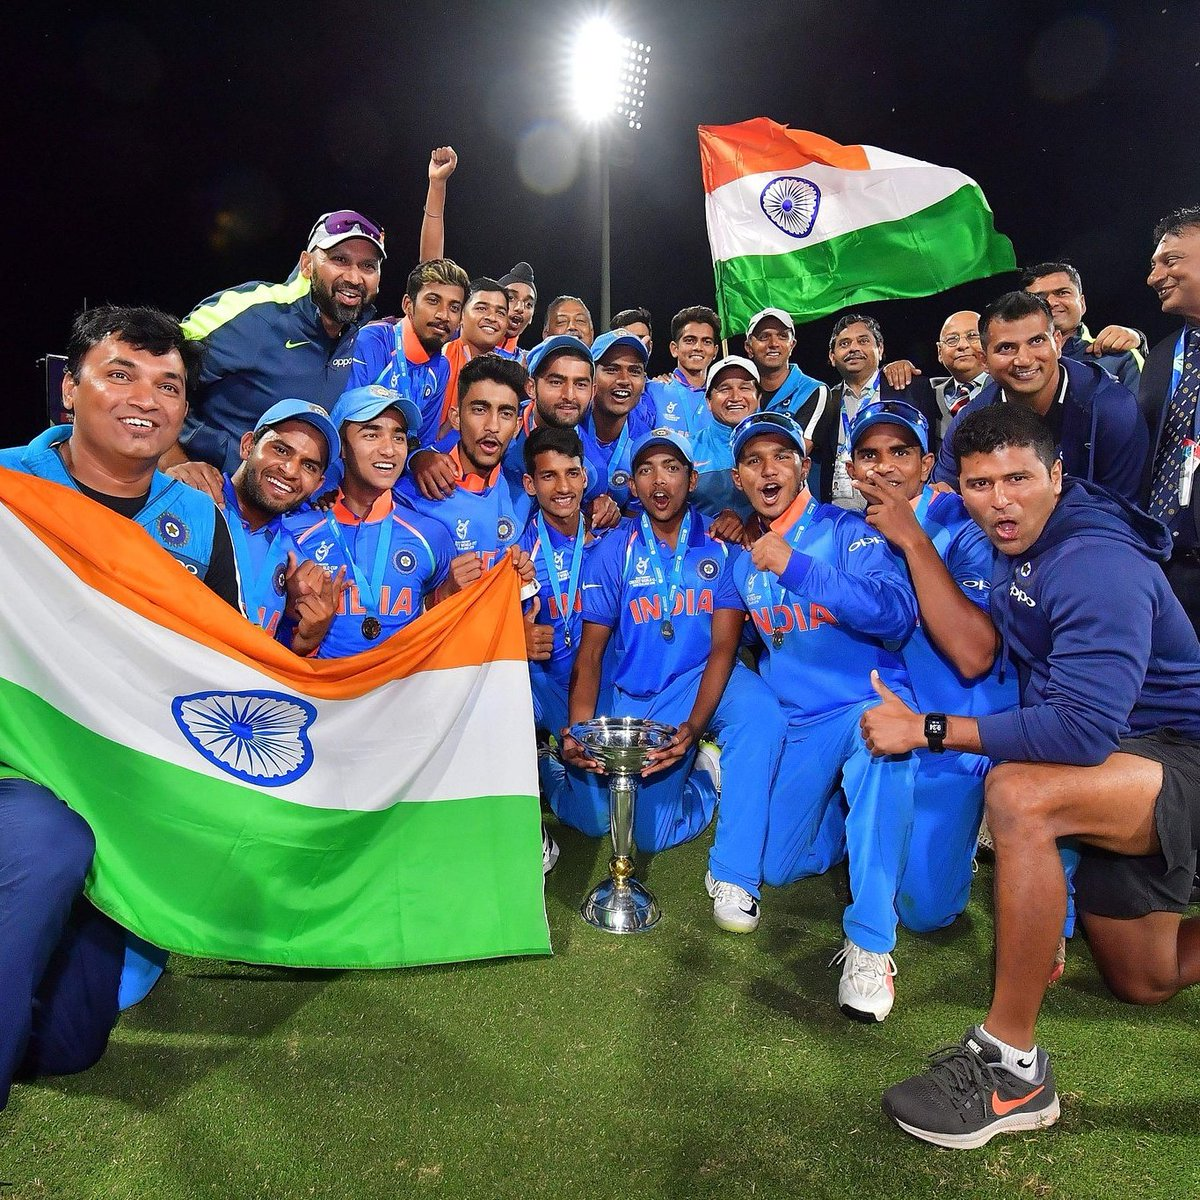 u19 world cup final india won by 8 wickets